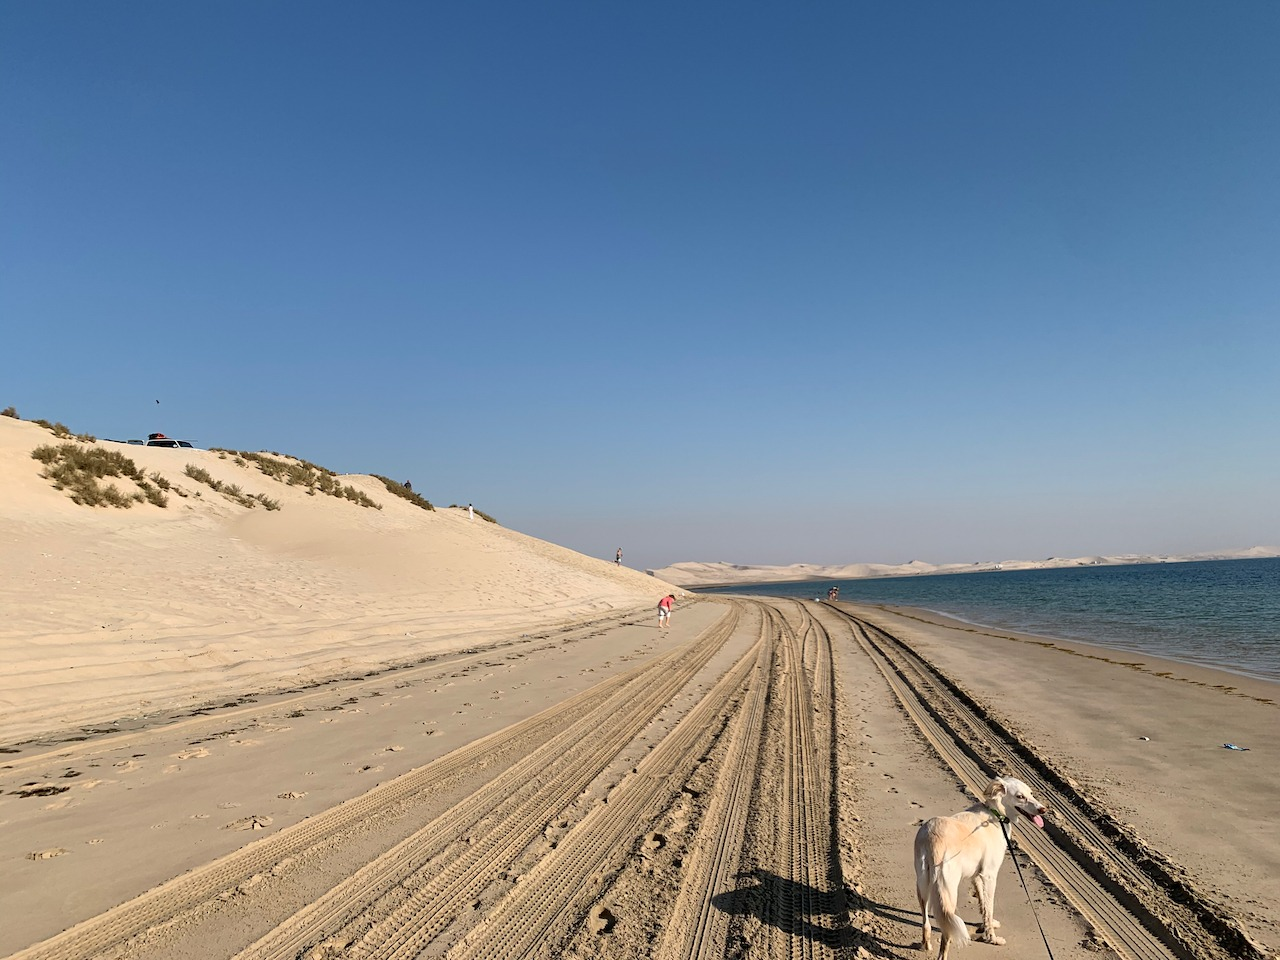 Tracks at the edge of the dunes